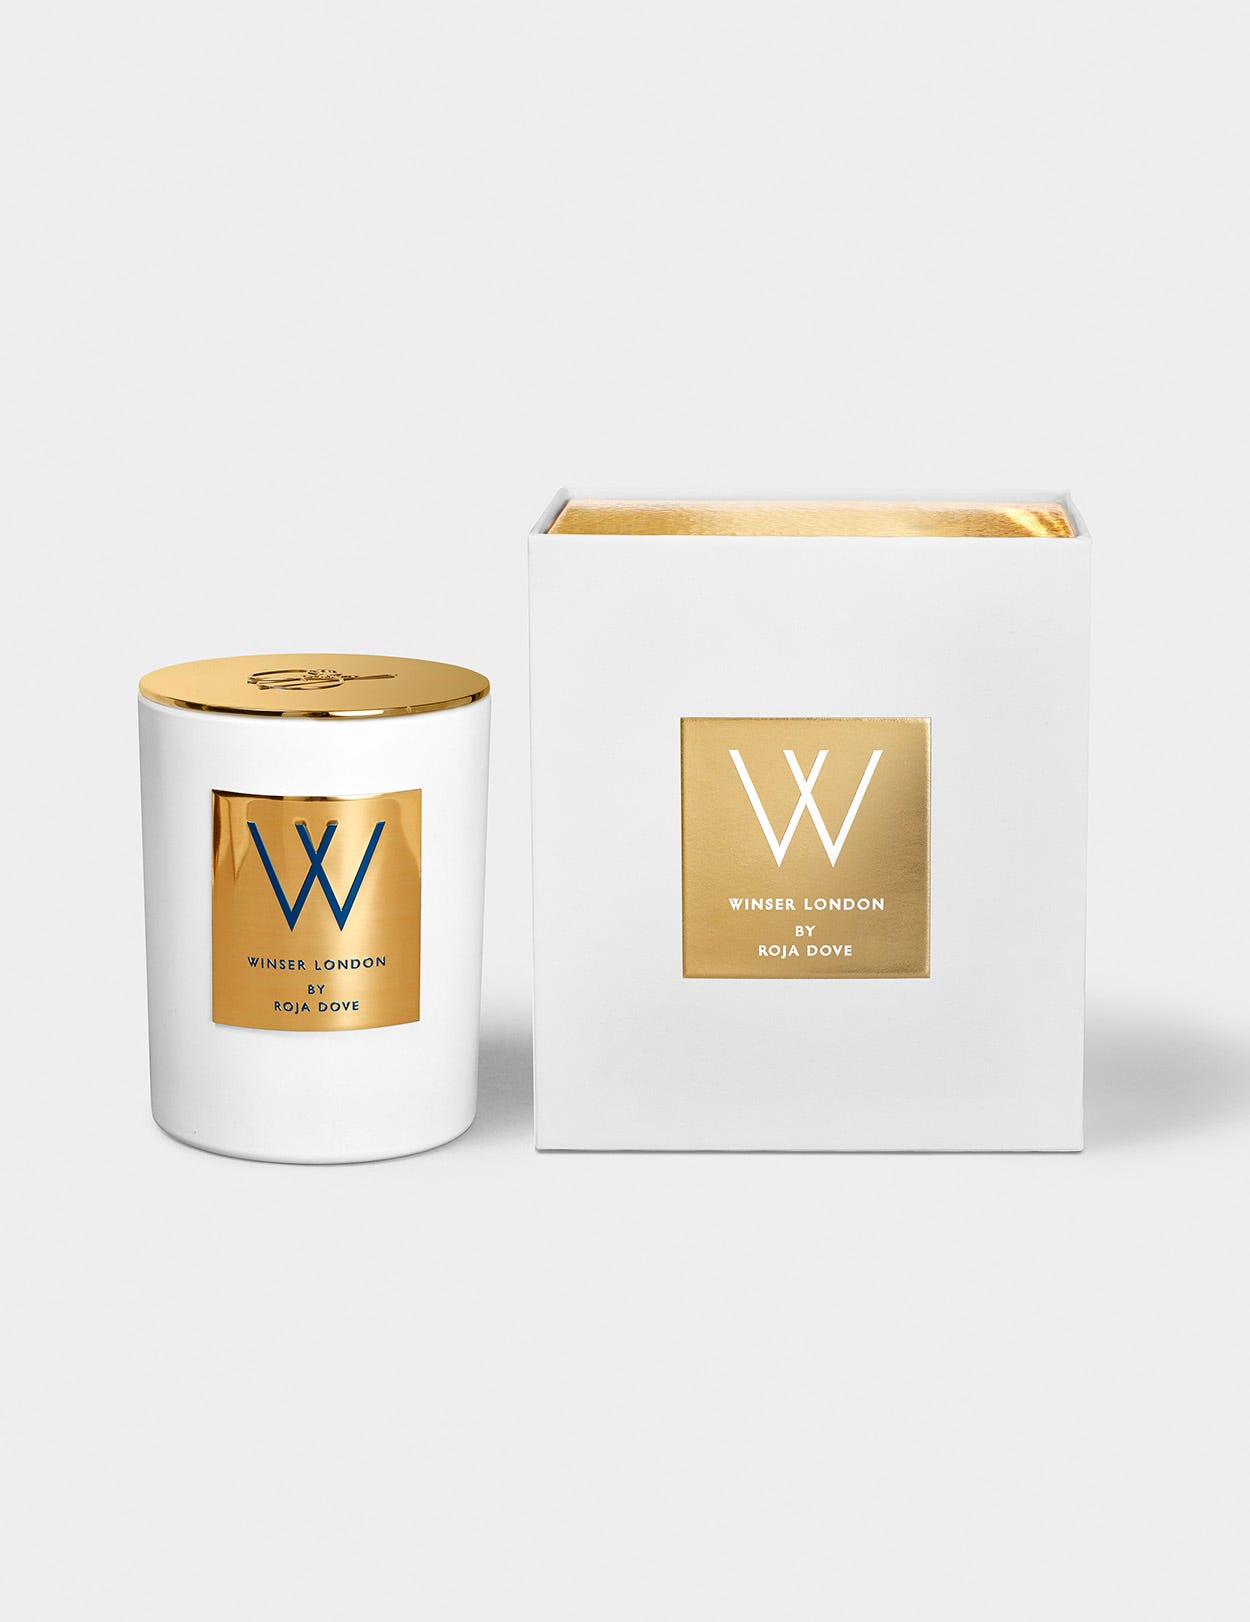 WINSER LONDON BY ROJA DOVE CANDLE